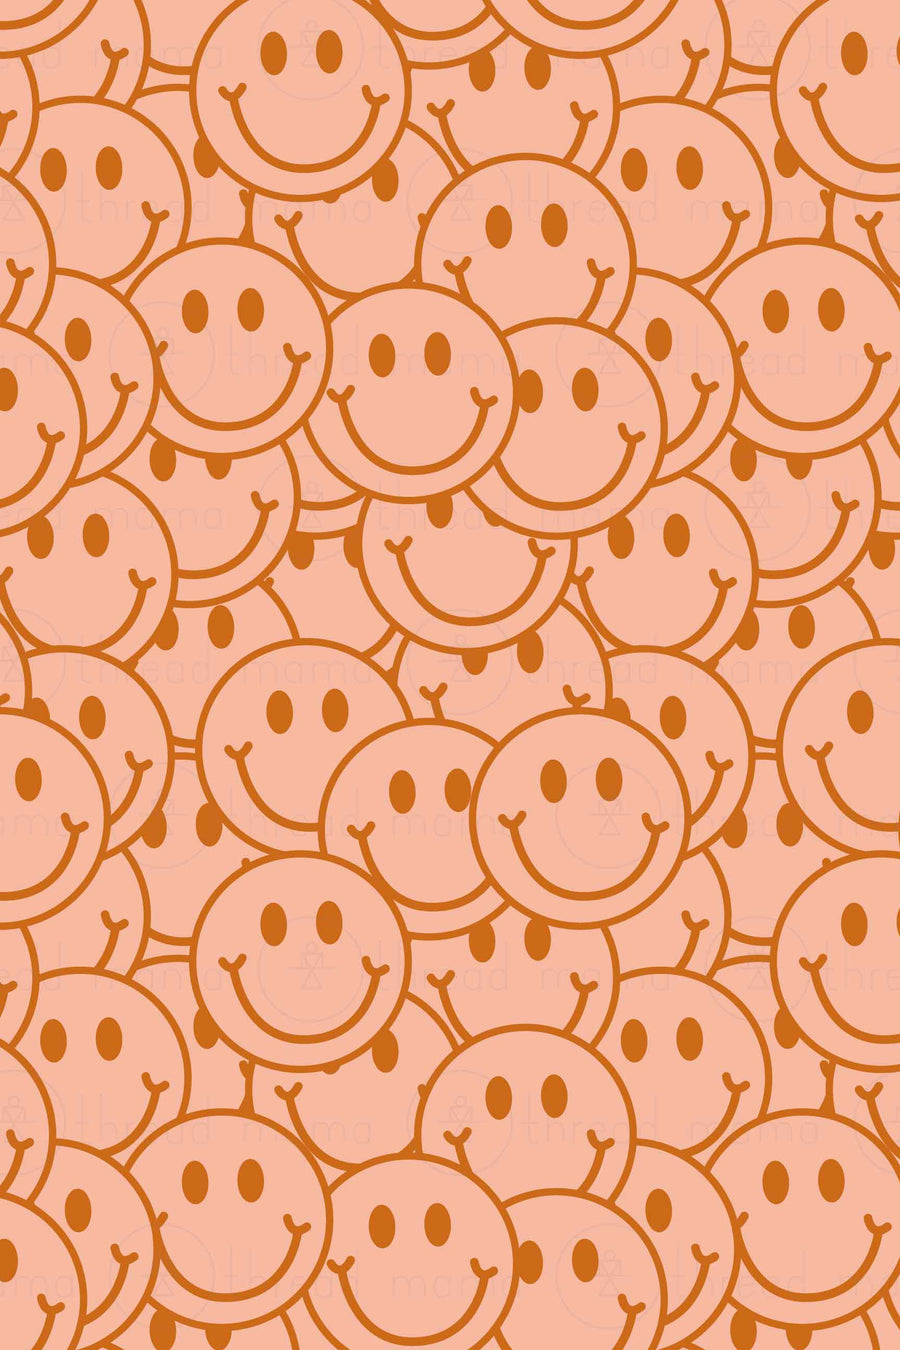 Repeating Pattern 71 (Seamless)